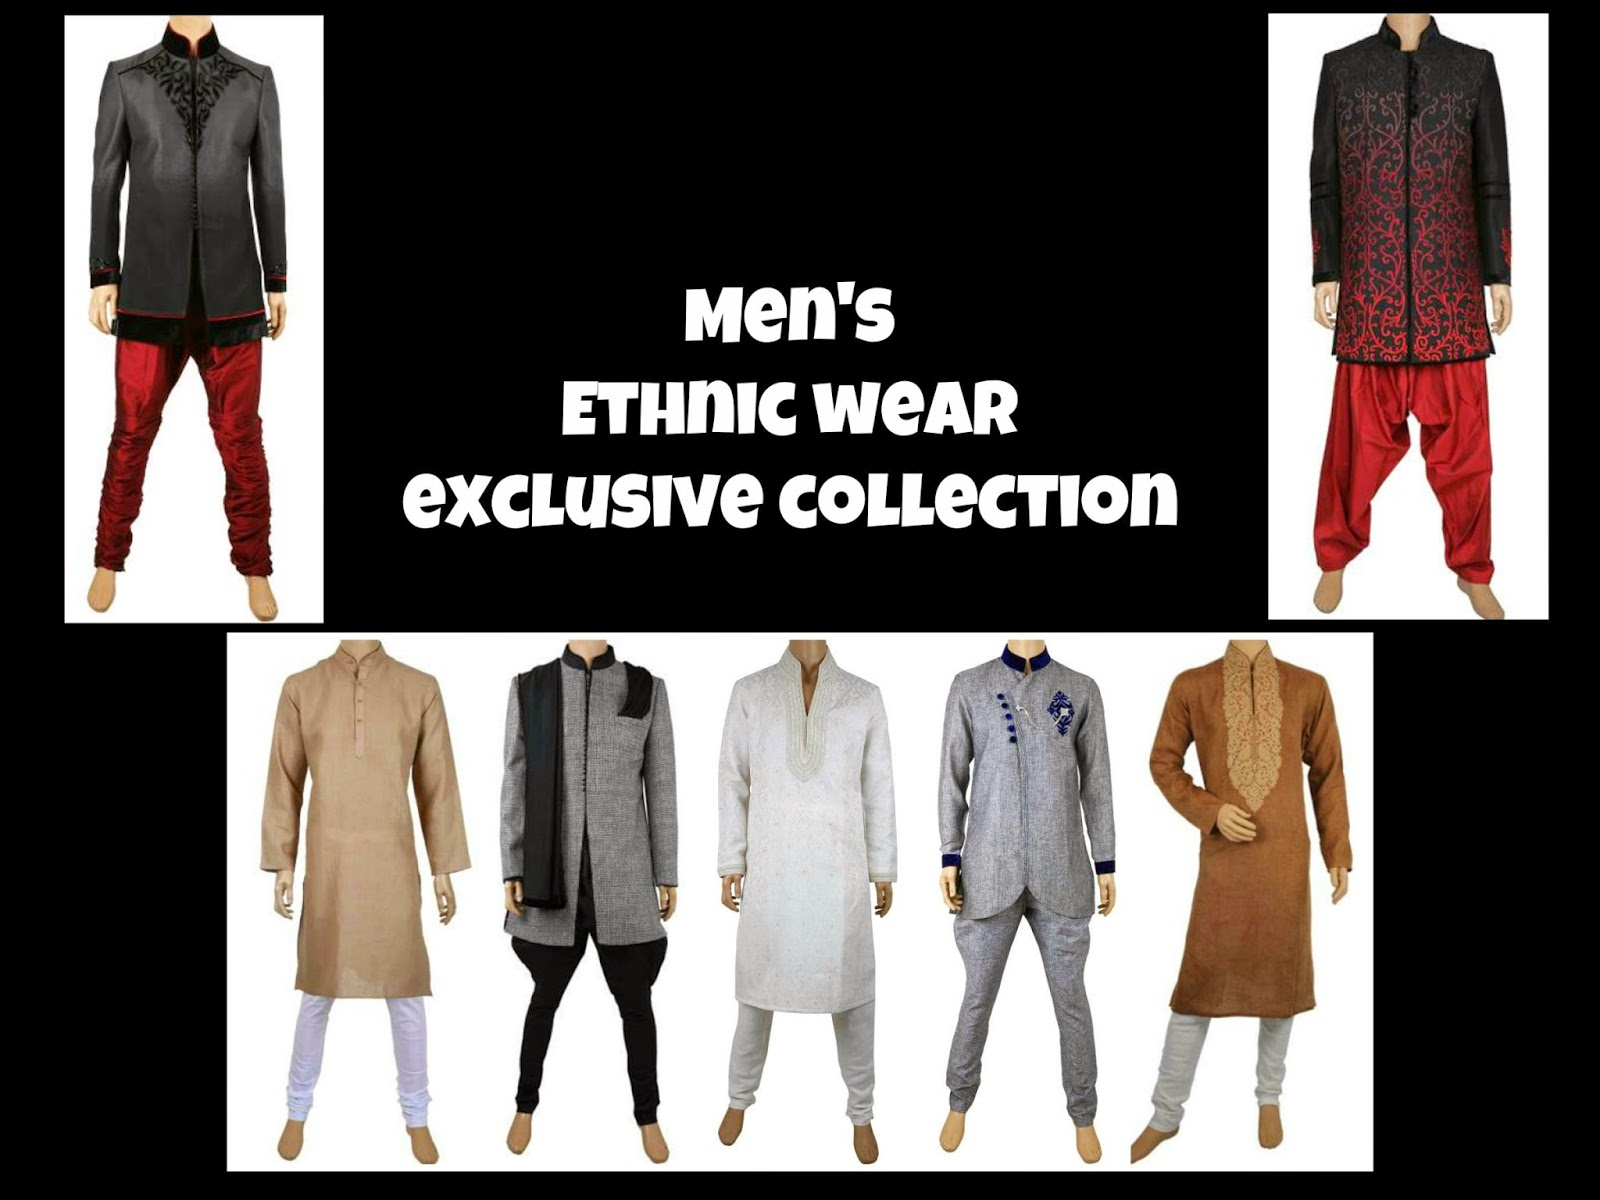 eid collection 2014 for men,eid men clothing, eid men designer collection, exclusive mens eid collection, eid designer collection,